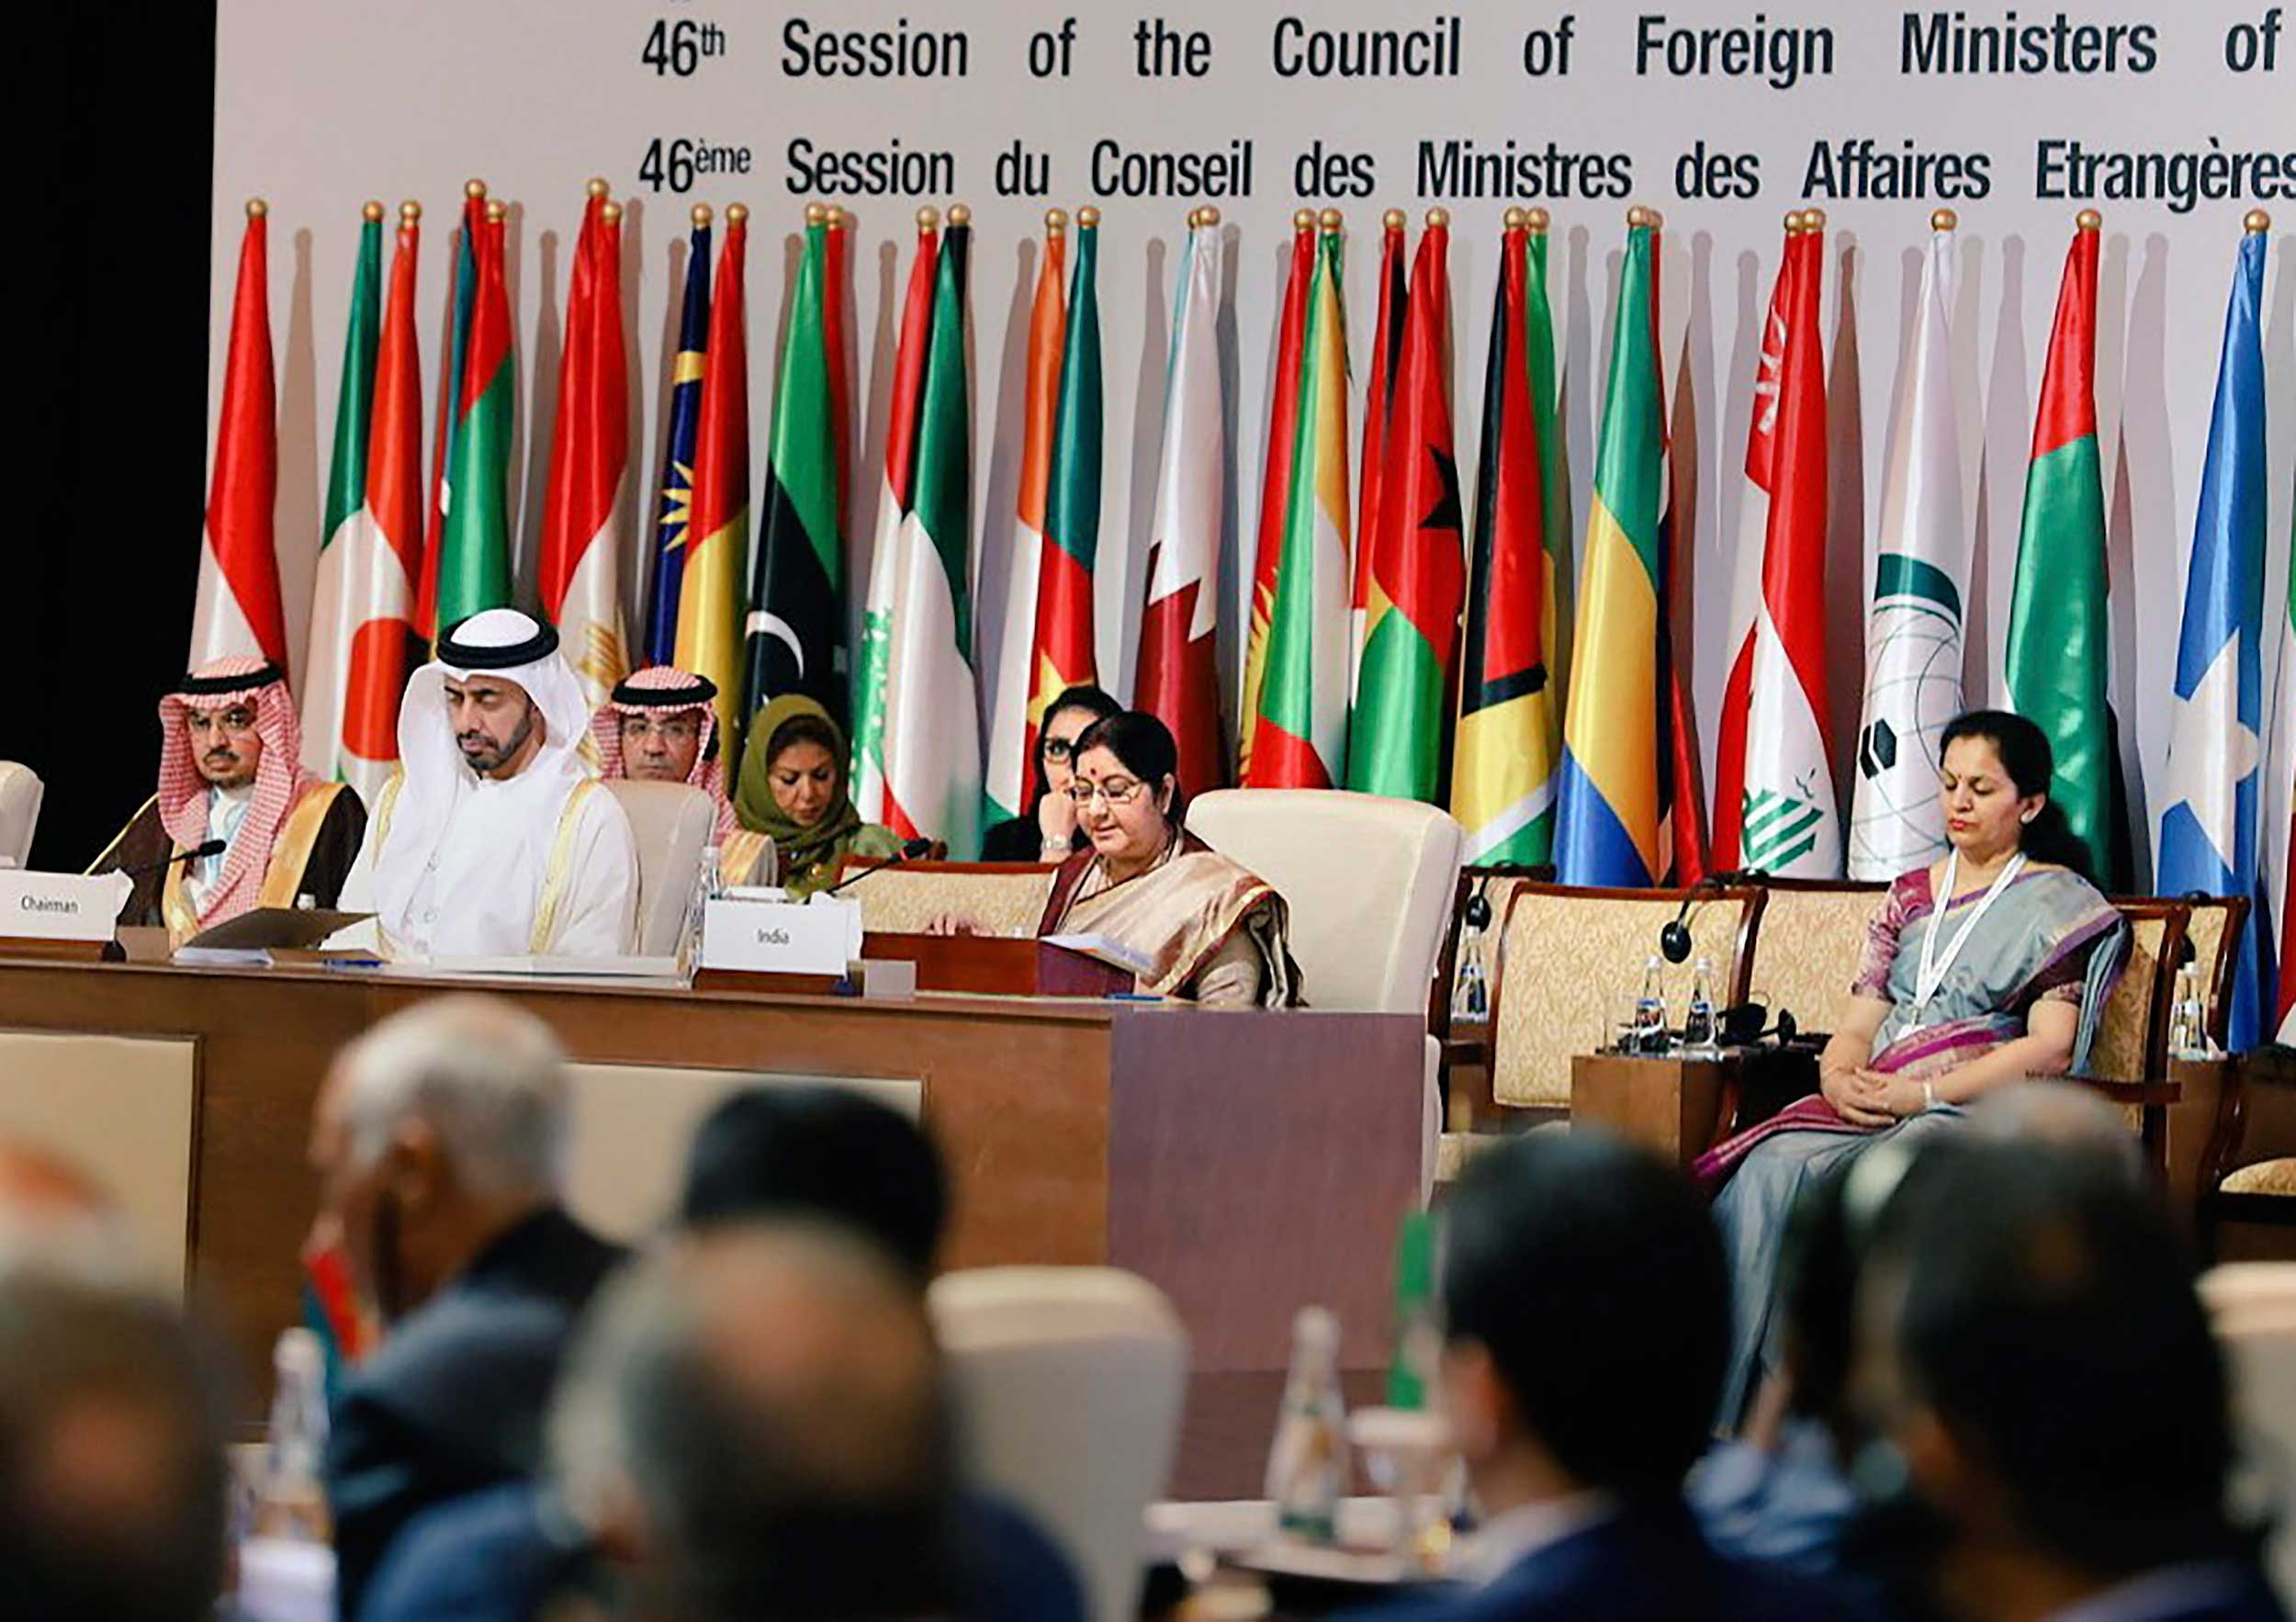 External affairs minister Sushma Swaraj addresses as 'Guest of Honour' at the 46th Foreign Ministers' Meeting of Organisation of Islamic Cooperation in Abu Dhabi,  on March 1, 2019.